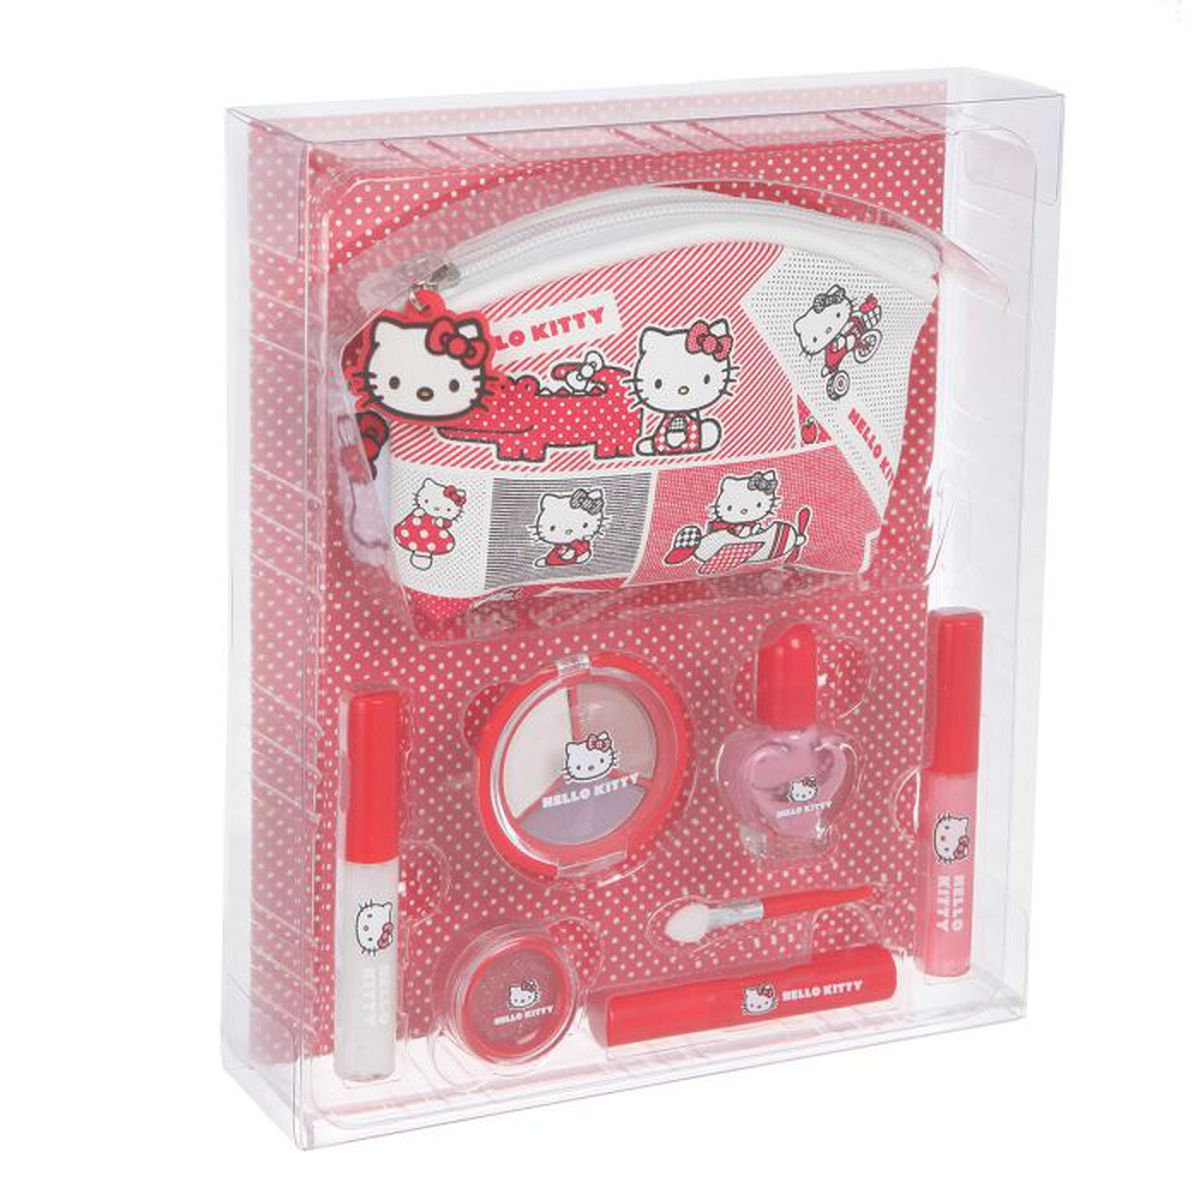 coffret maquillage hello kitty achat vente coffret cadeau beaut set de maquillage hello kit. Black Bedroom Furniture Sets. Home Design Ideas